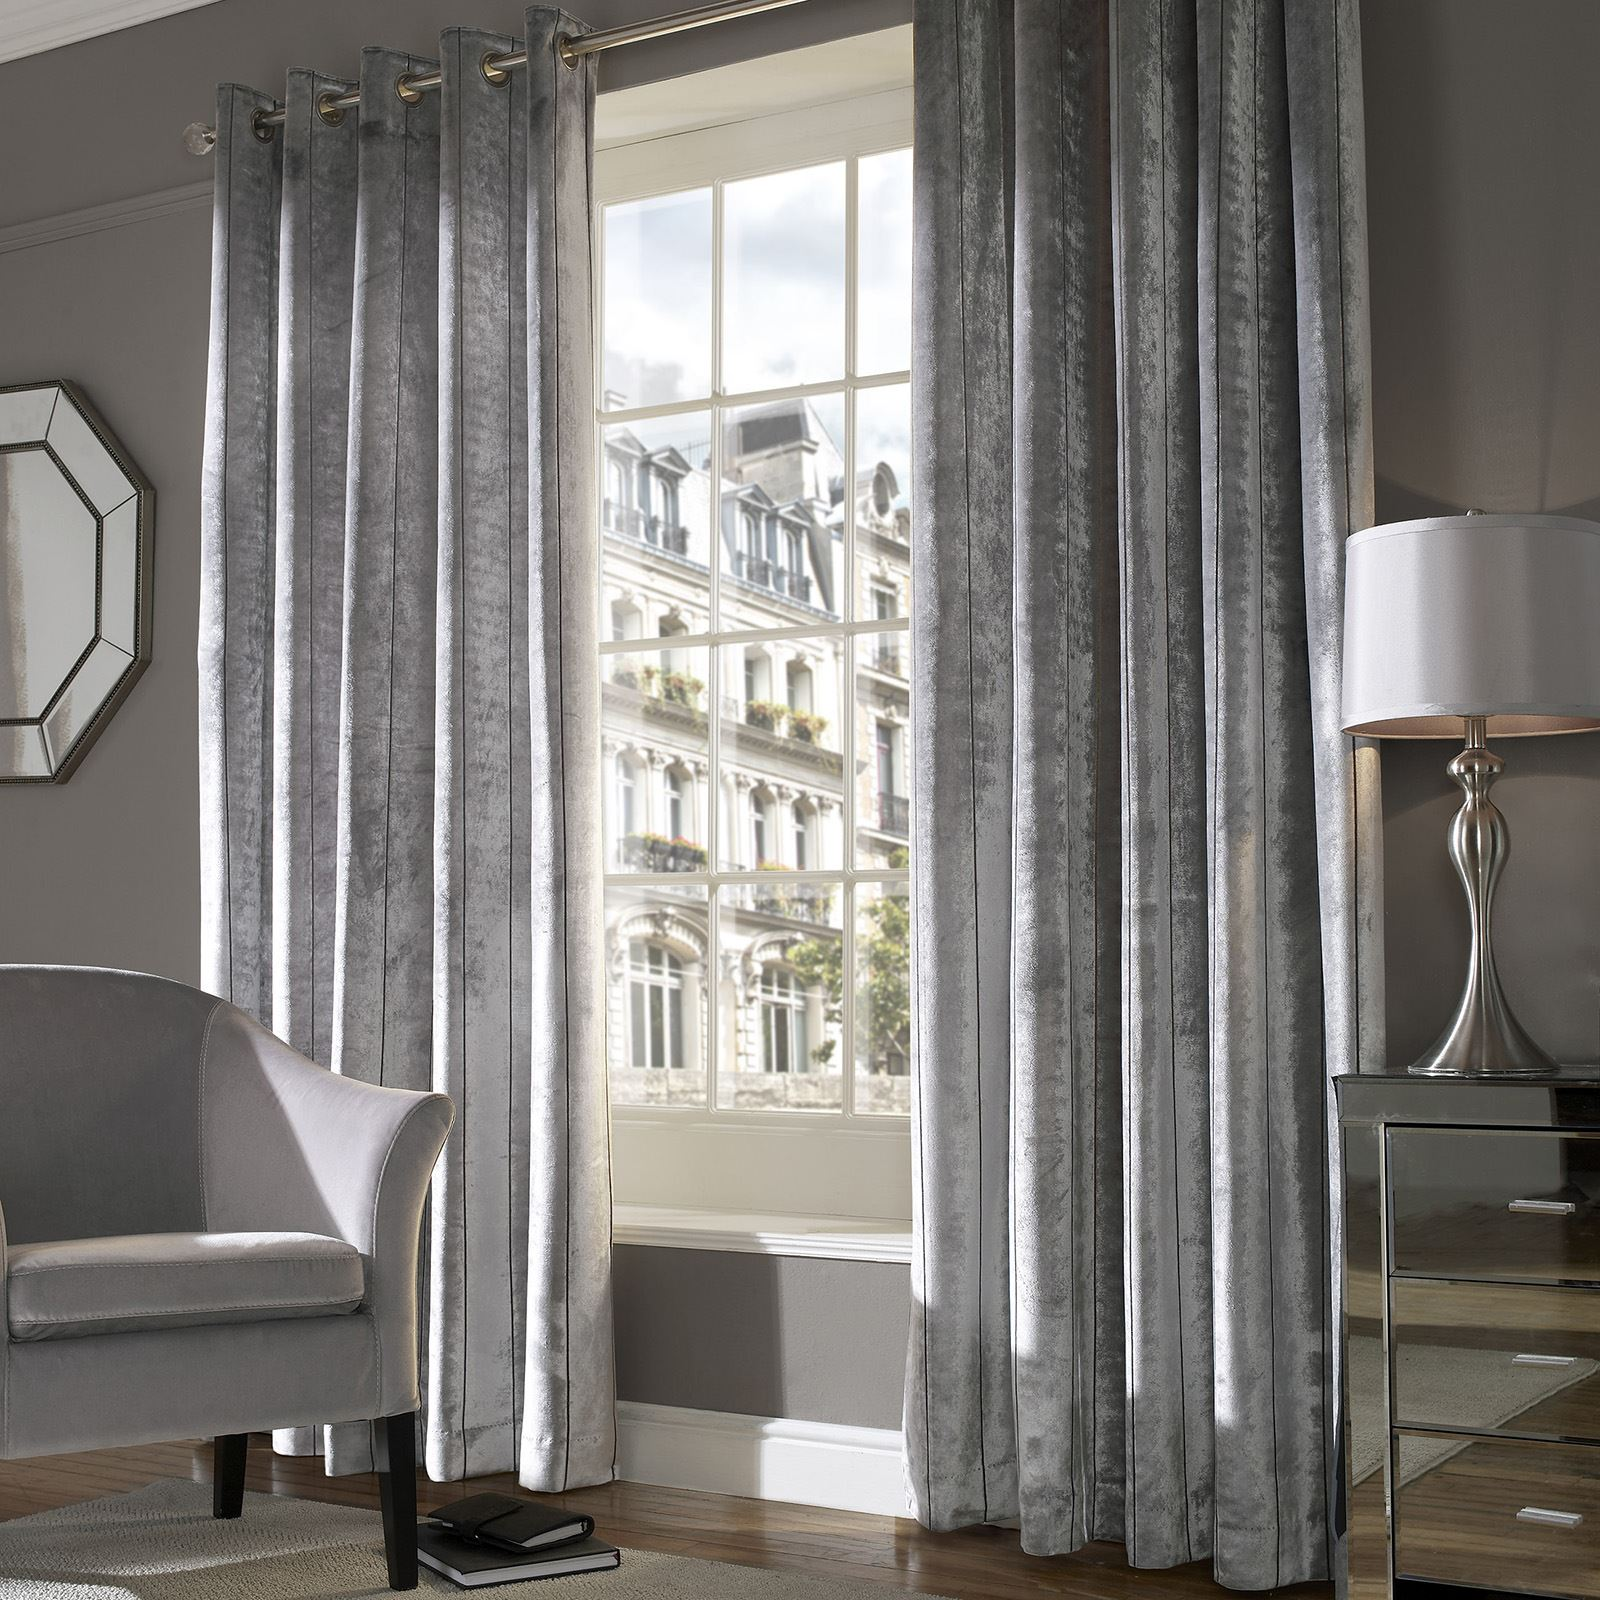 Light Shimmers Across These Beautiful Cut Velvet Curtains, Adding An  Essence Of Pure Luxury To Your Room. The Style Includes A Decorative Stripe  To Add ...